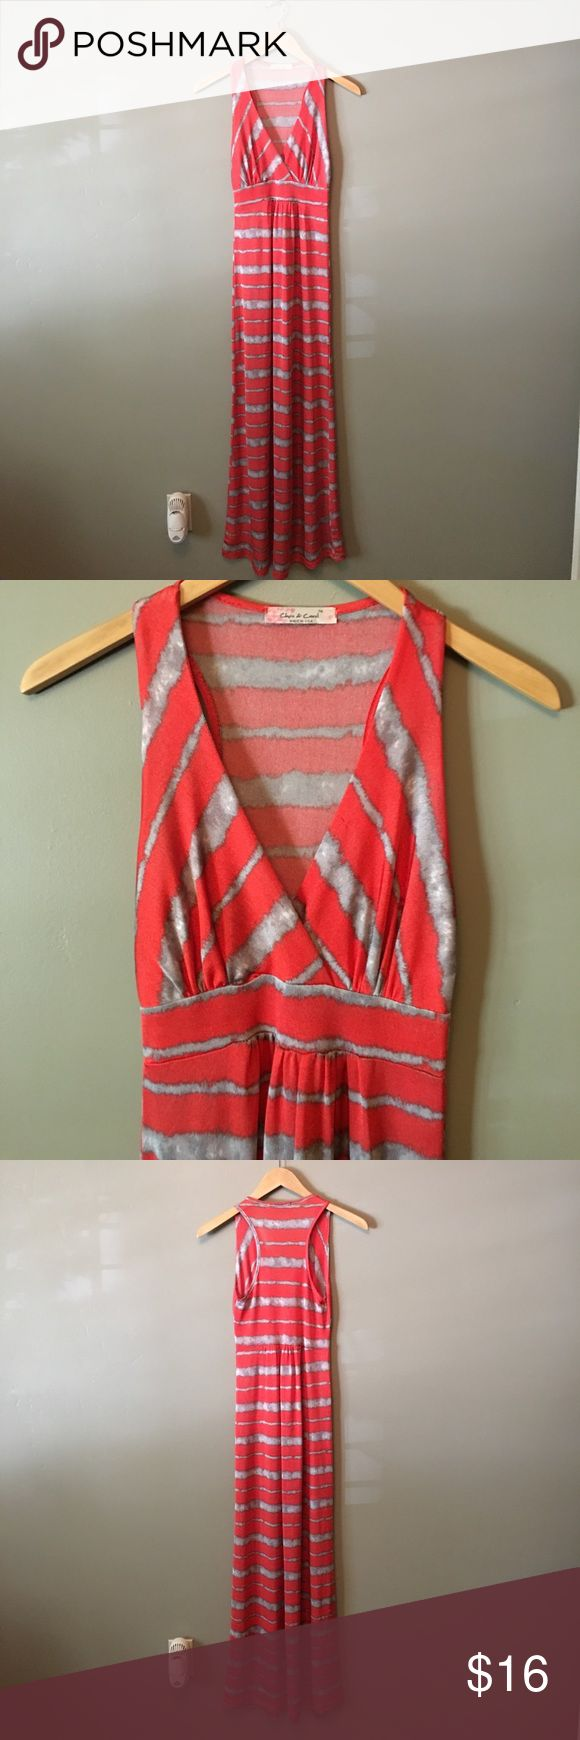 Orange and silver maxi dress Orange and silver maxi dress. Would be great for a hot summer day or as a cover up! V neck in the front and racer back on the back. Chris & Carol Dresses Maxi